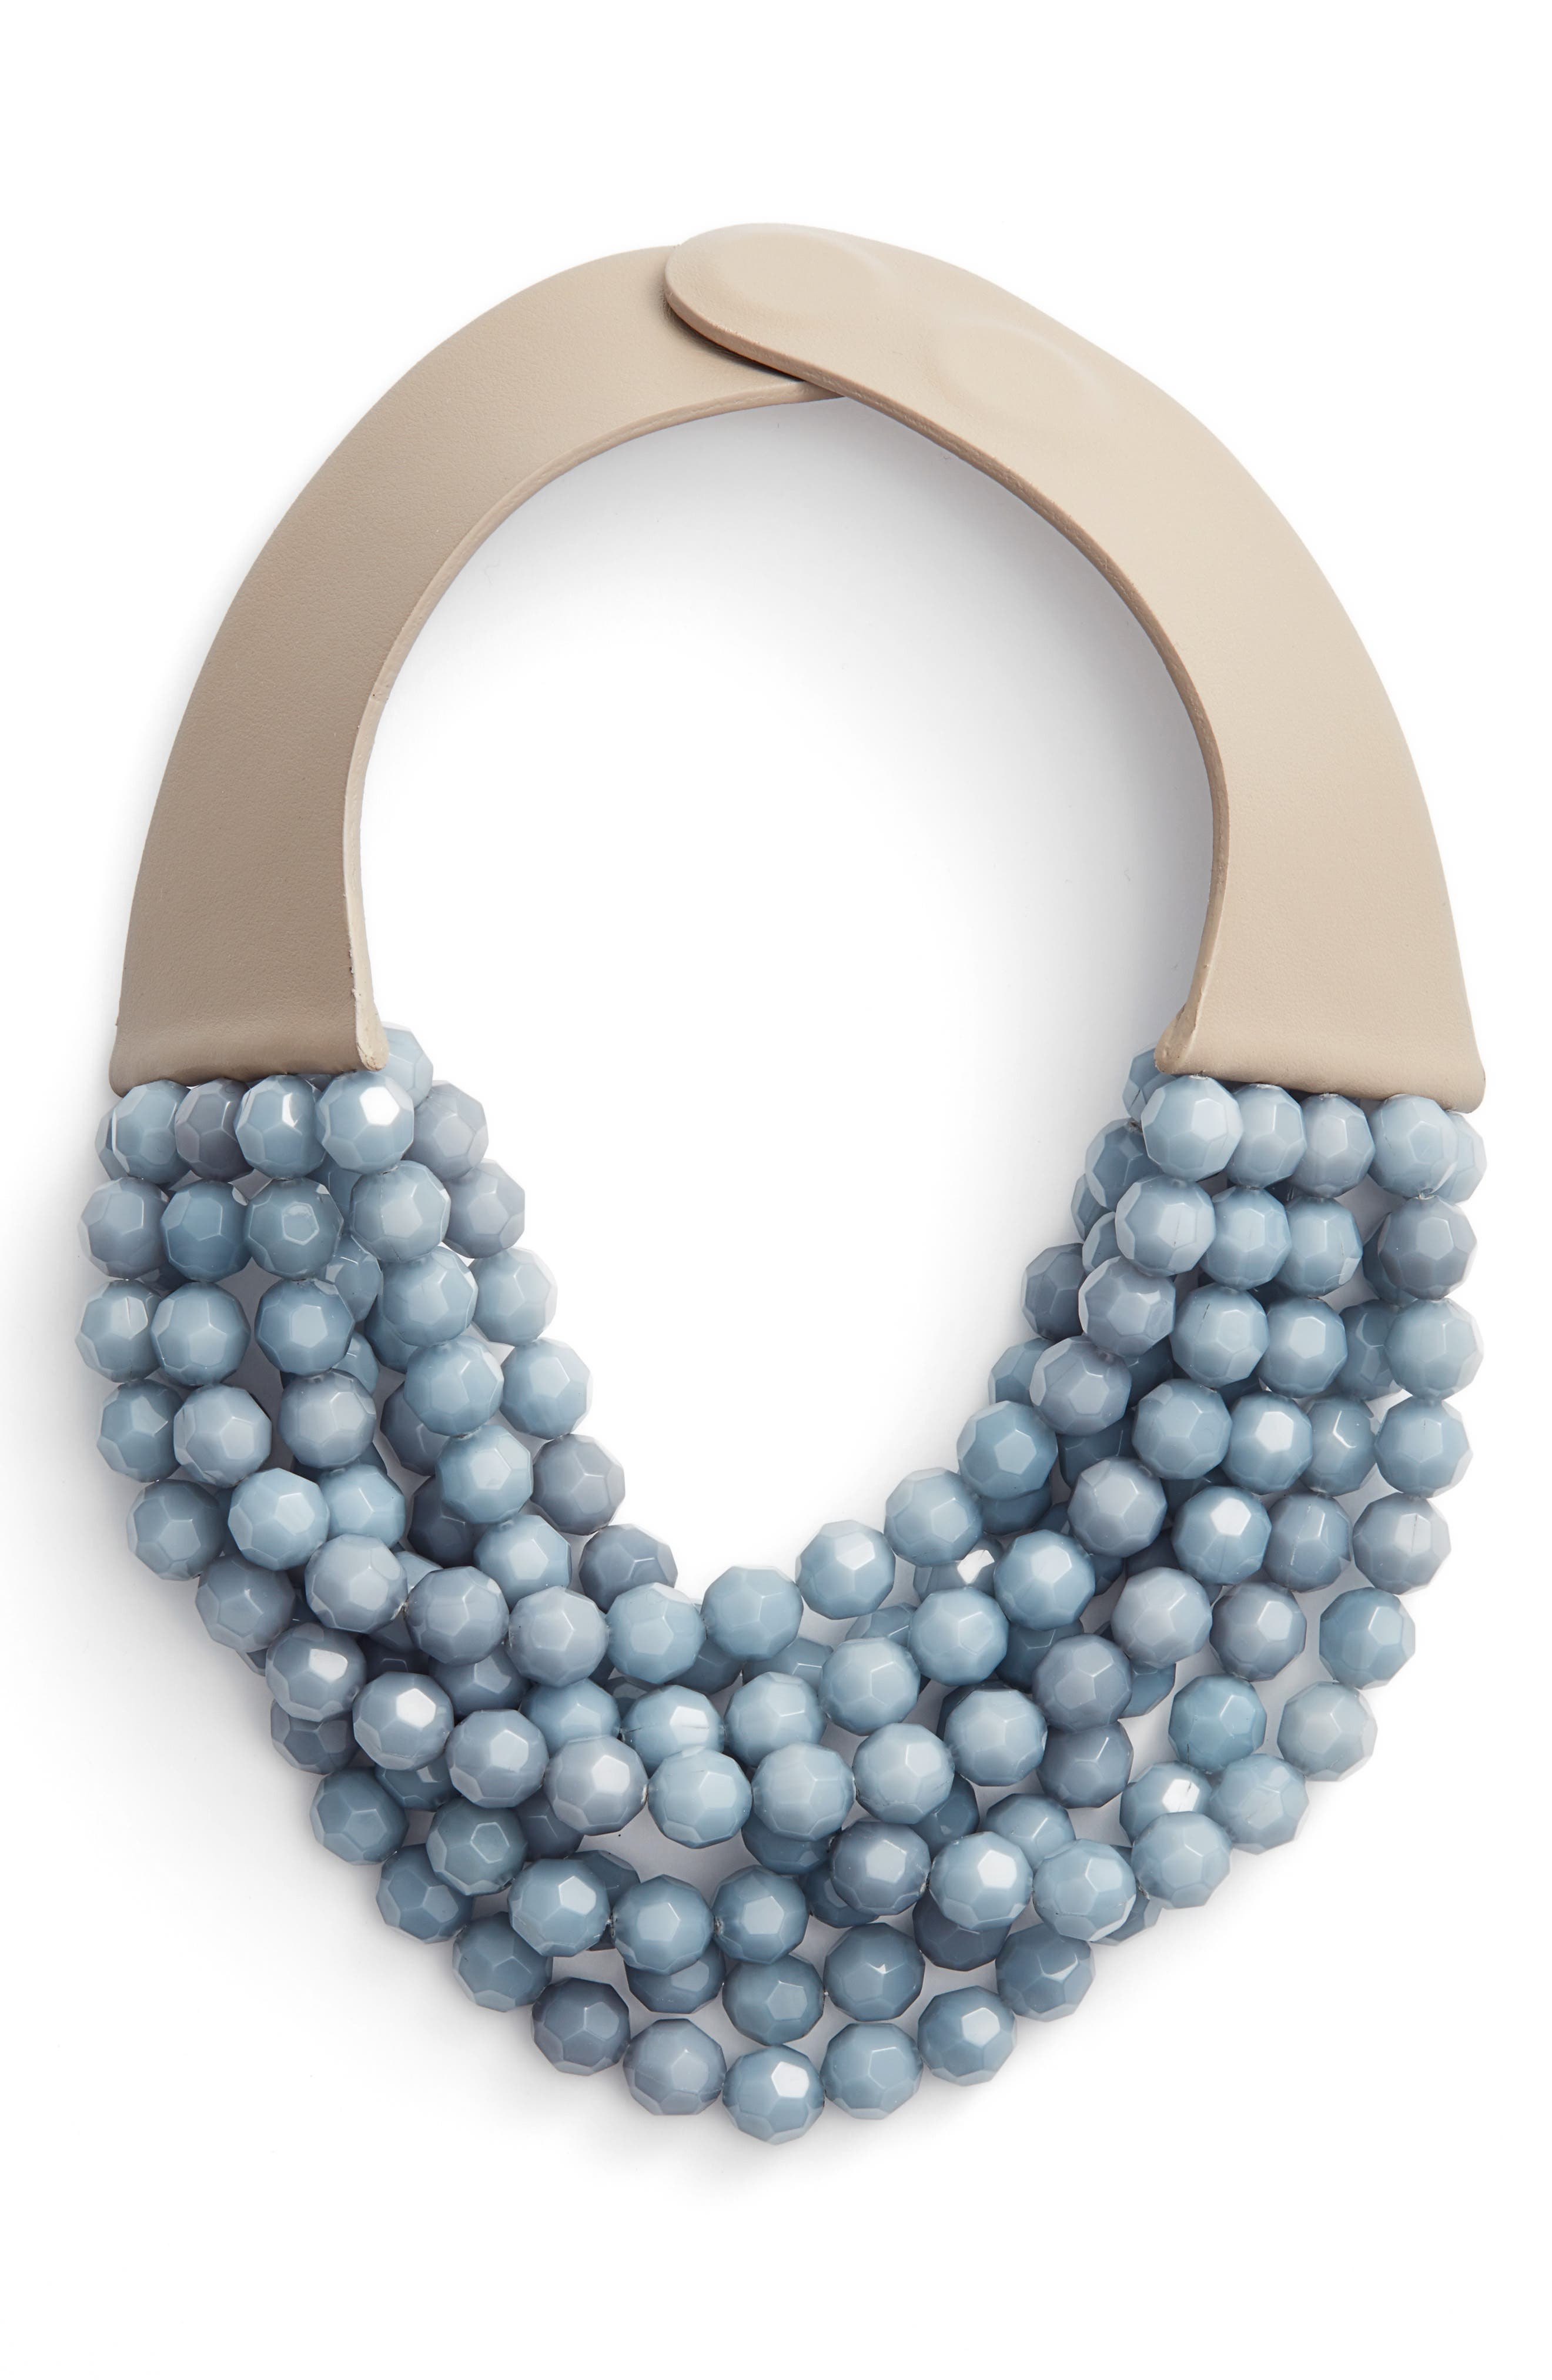 Fairchild Baldwin Bella Beaded Collar Necklace